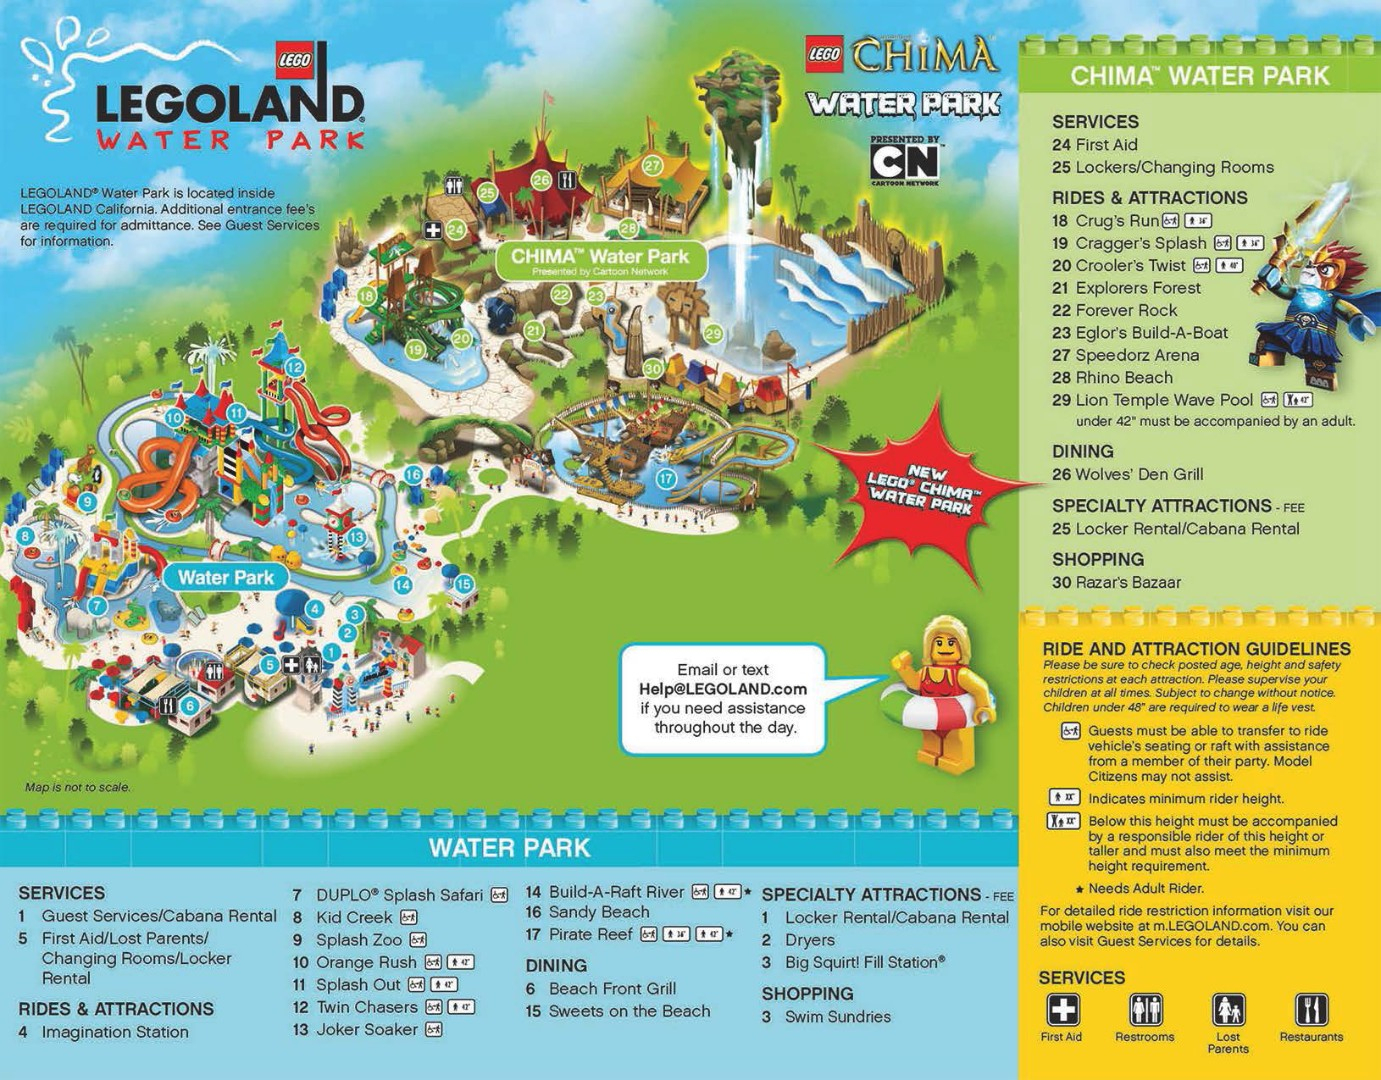 Legoland Water Park Map Large Map With Theme Parks California Map - Legoland California Water Park Map